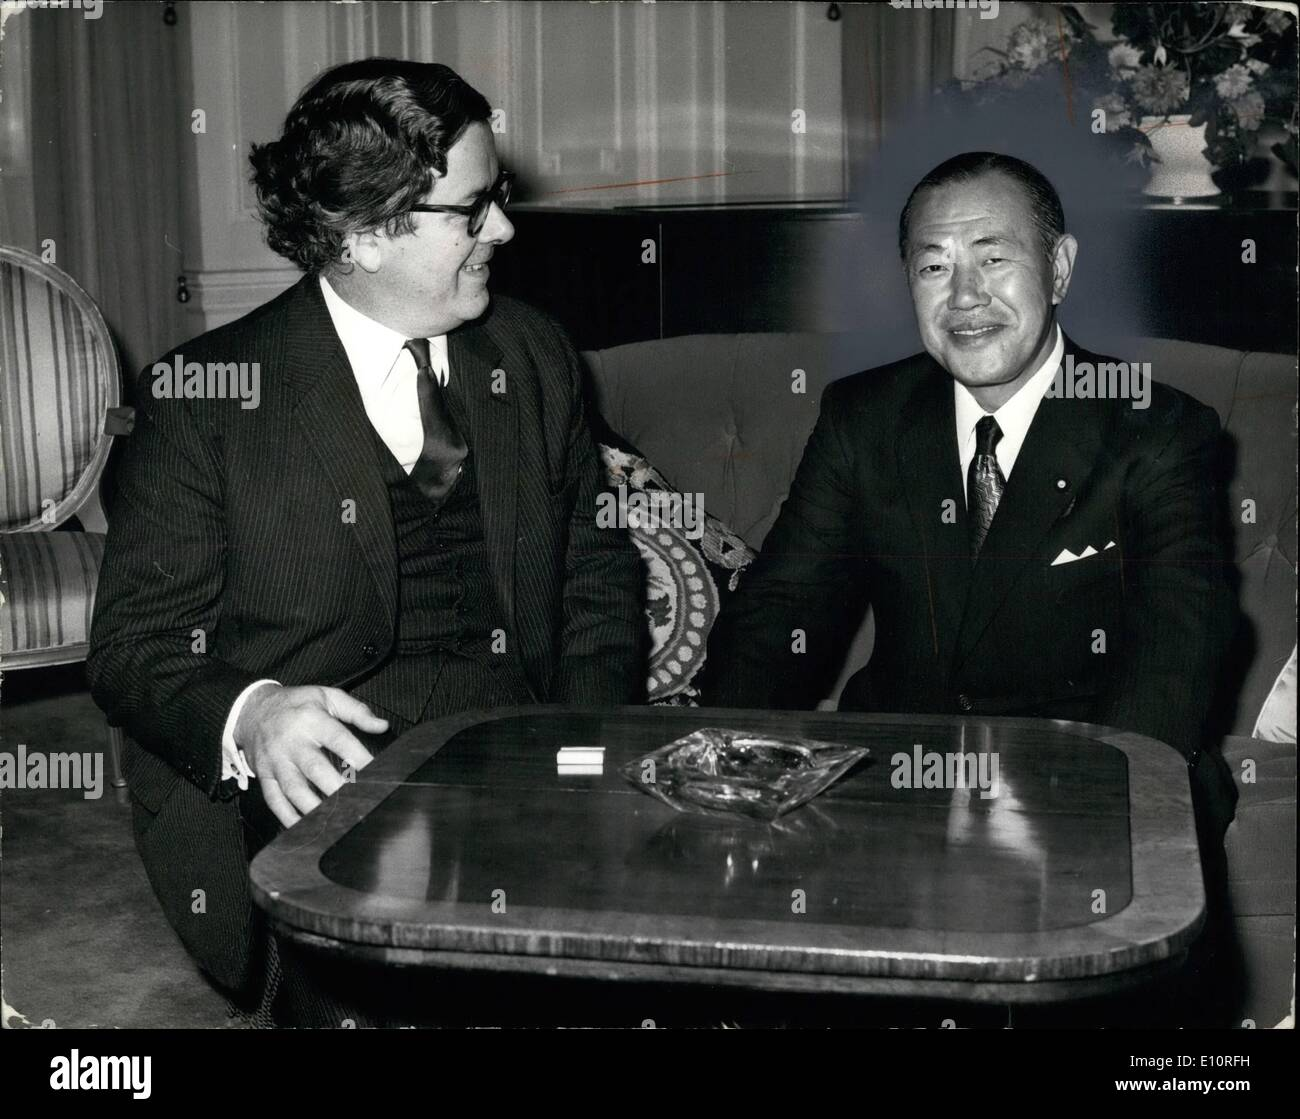 Oct. 10, 1973 - Sir Geoffrey Howe calls on Japanese Prime Minister: Sir Geoffrey Howe, Minister for Trade and Consumer Affairs, - Stock Image